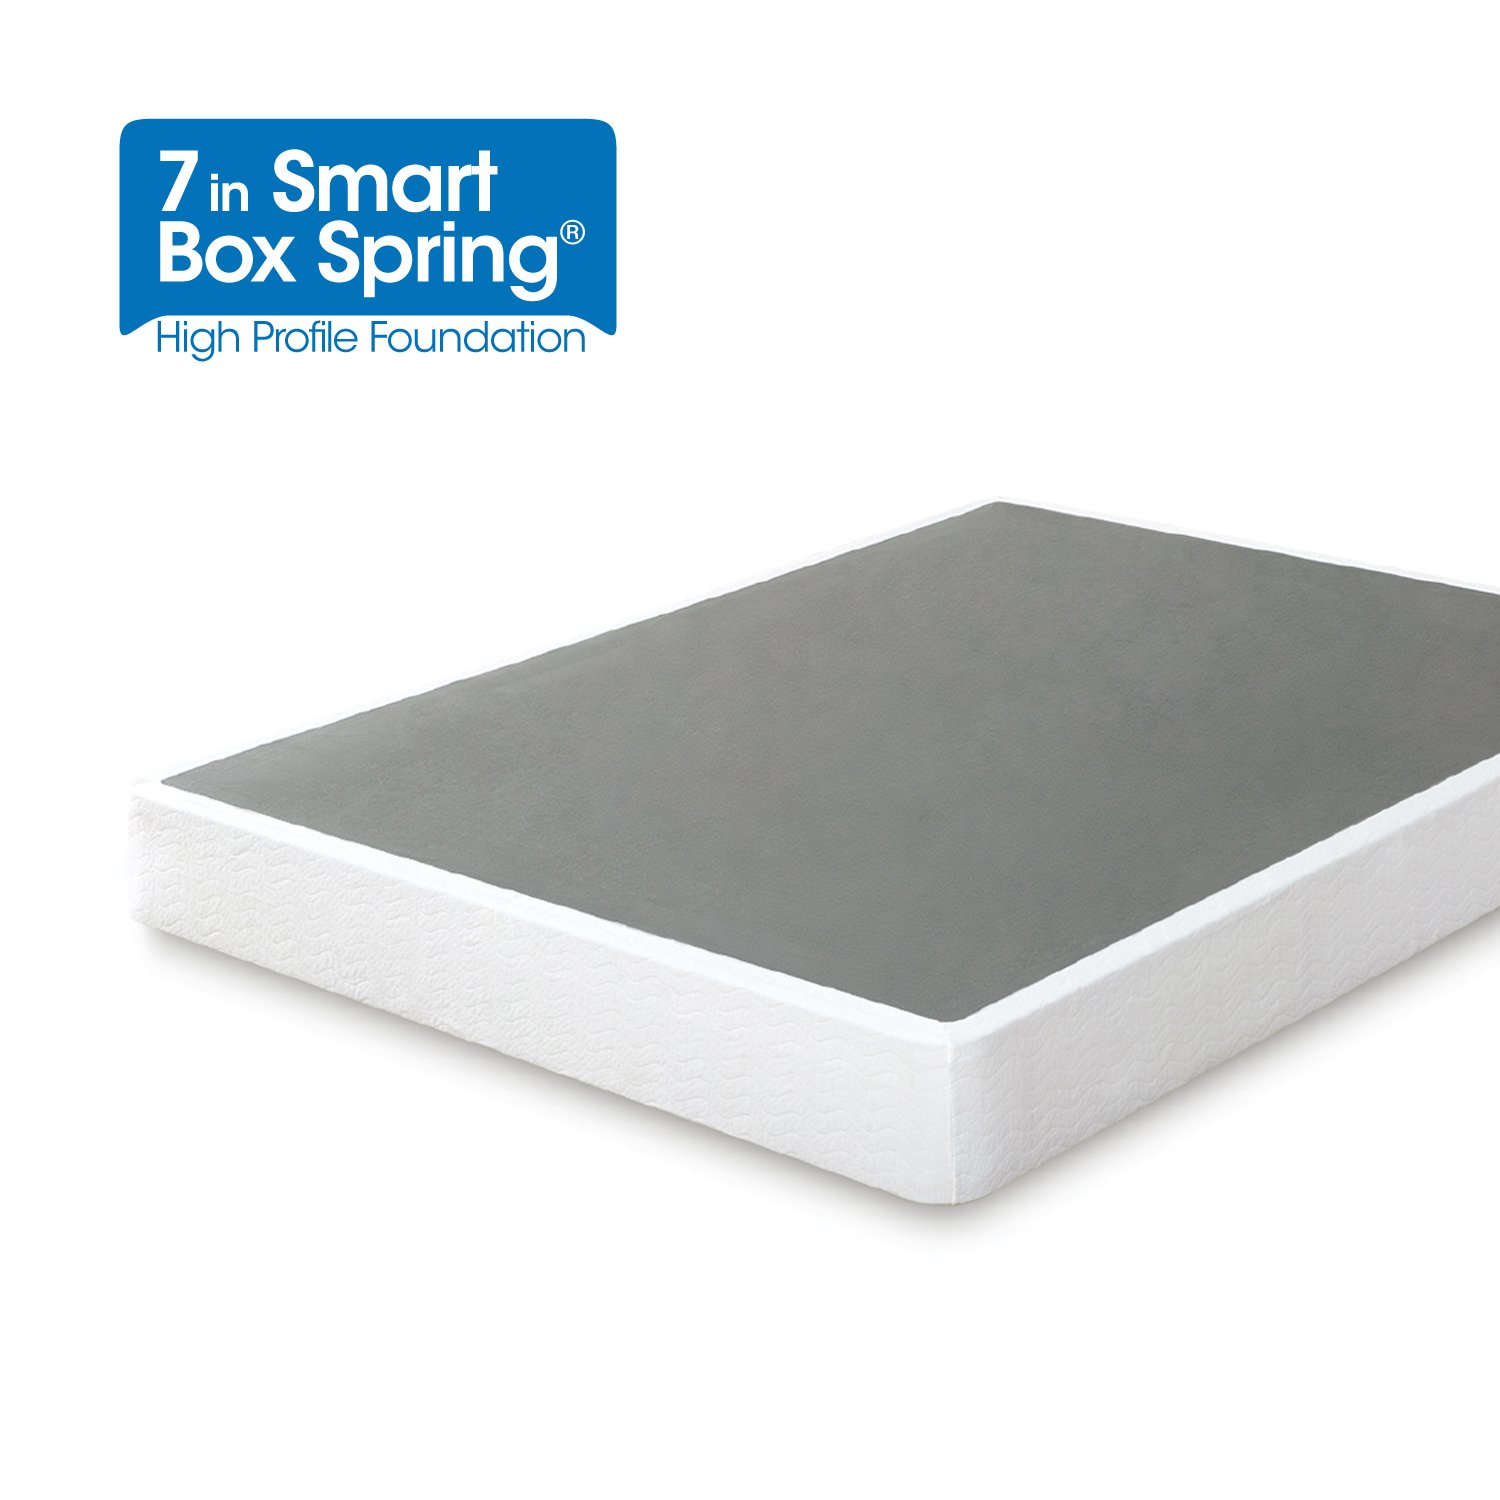 Zinus Armita 7 Inch Smart Box Spring / Mattress Foundation / Strong Steel Structure / Easy Assembly Required, Twin by Zinus